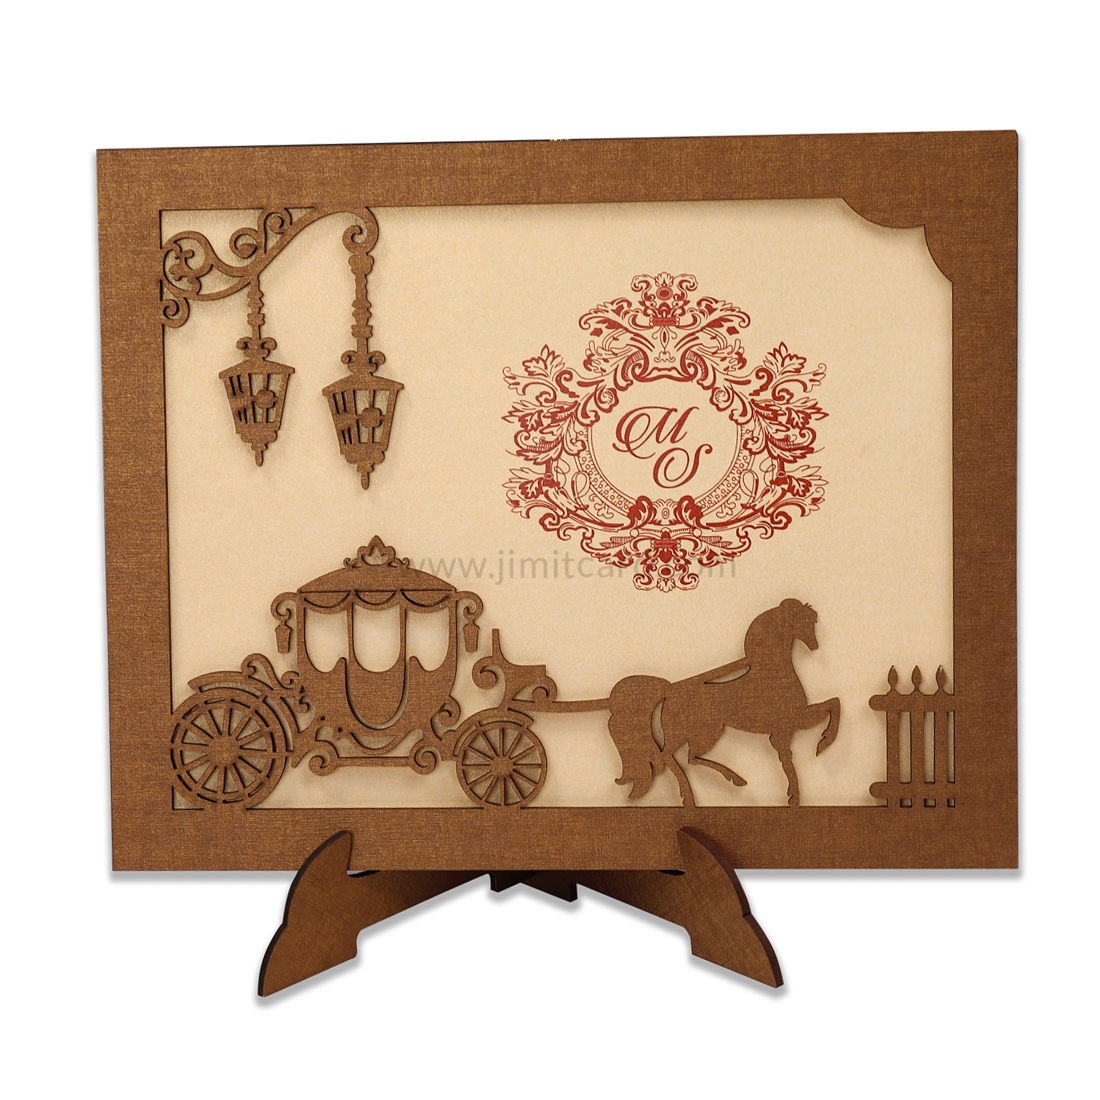 Chariot Design Wooden Laser Cut Marriage Invitation Card Usable as Photo Frame-0